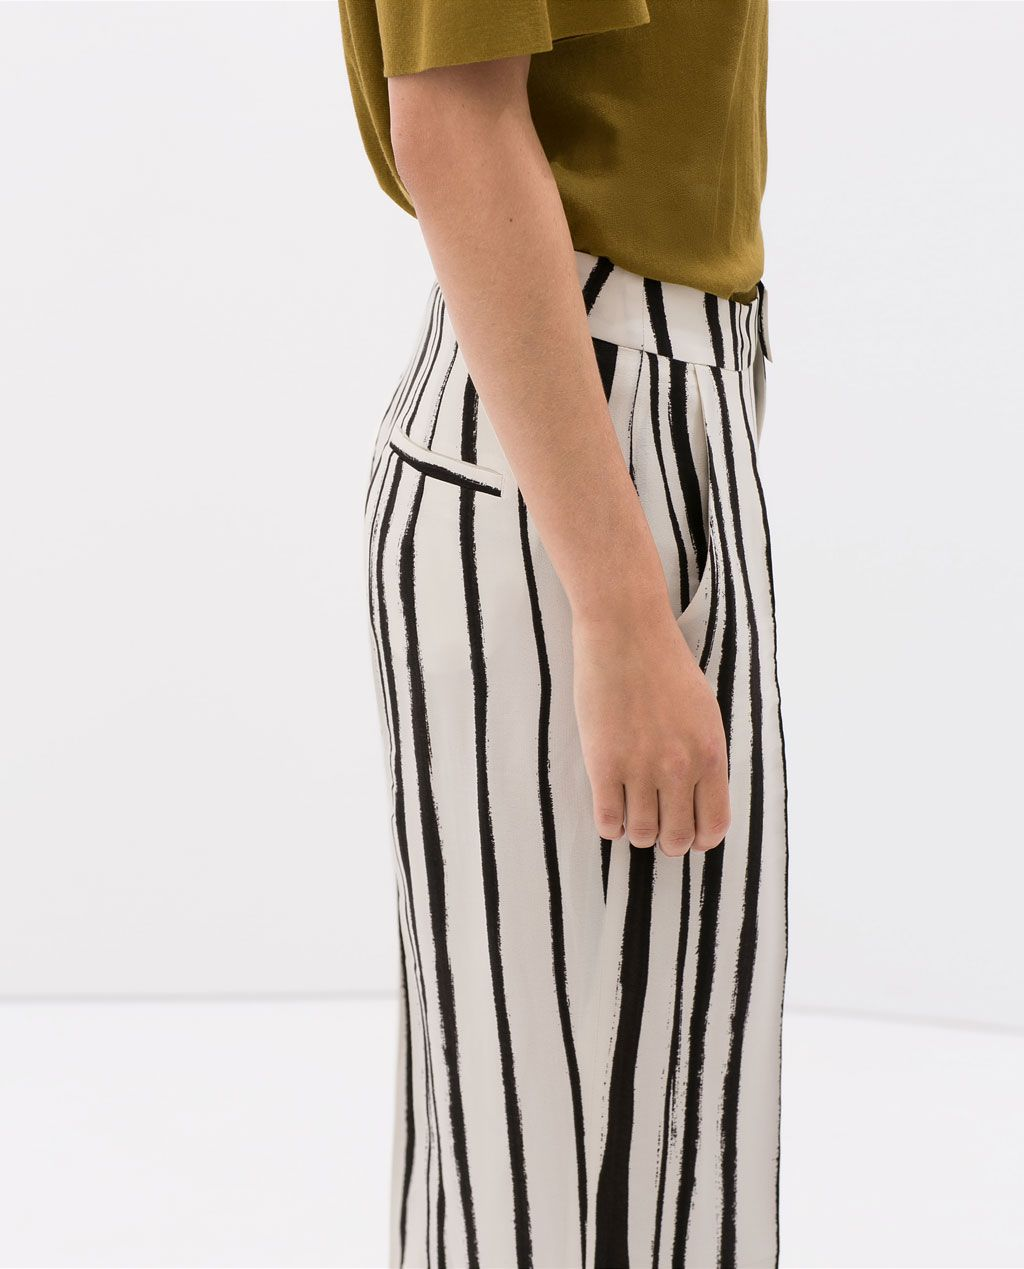 ZARA - NEW THIS WEEK - STRIPED TROUSERS